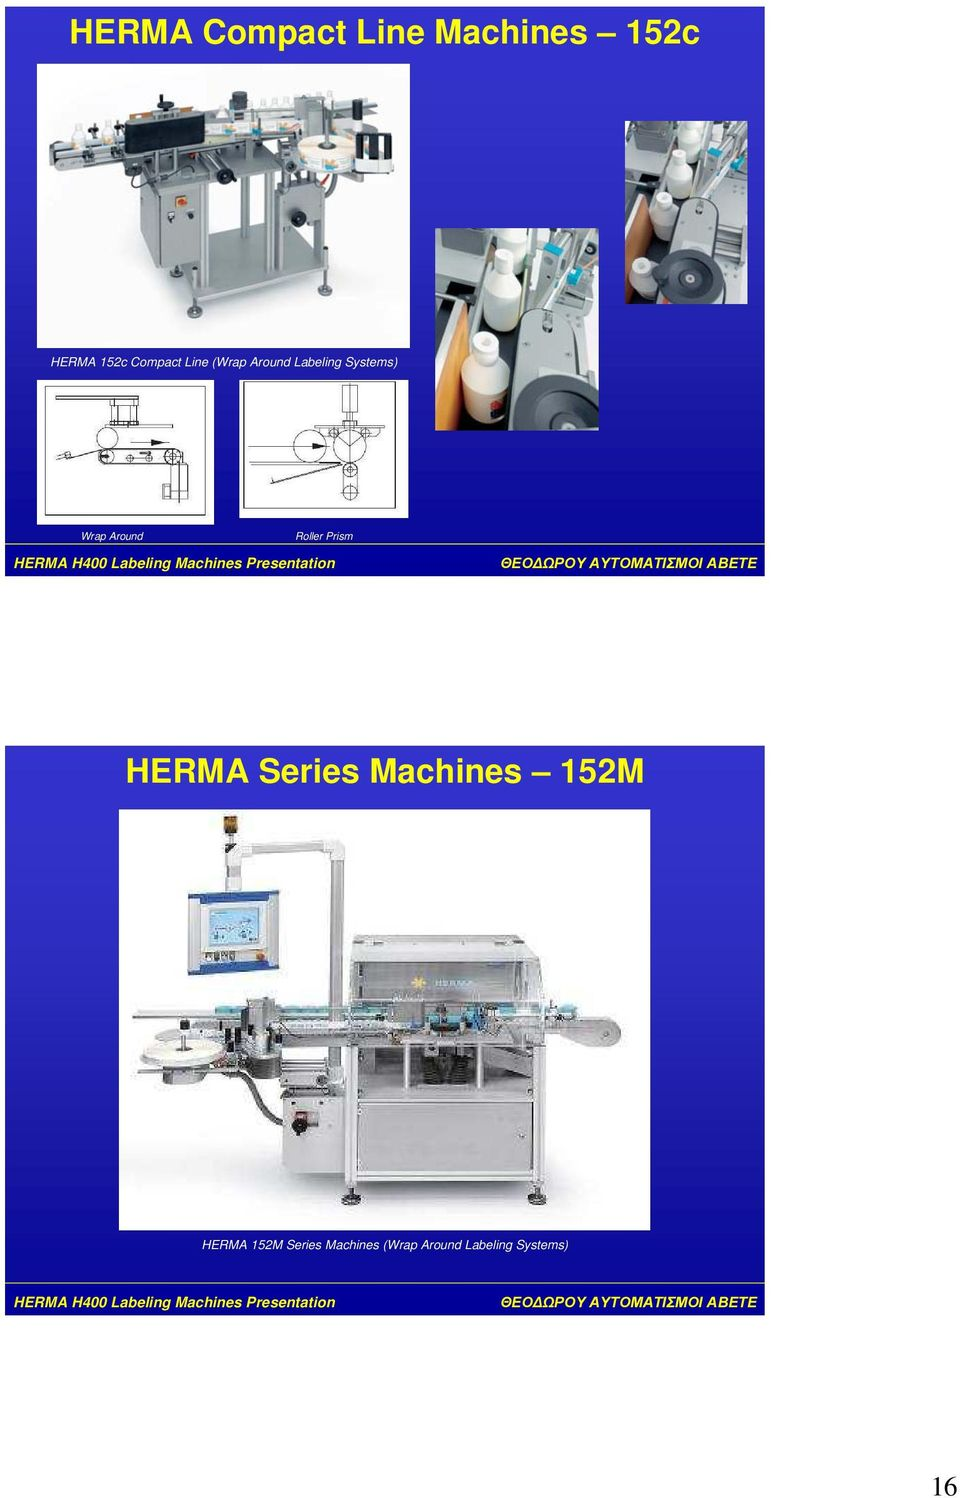 Around Roller Prism HERMA Series Machines 152M